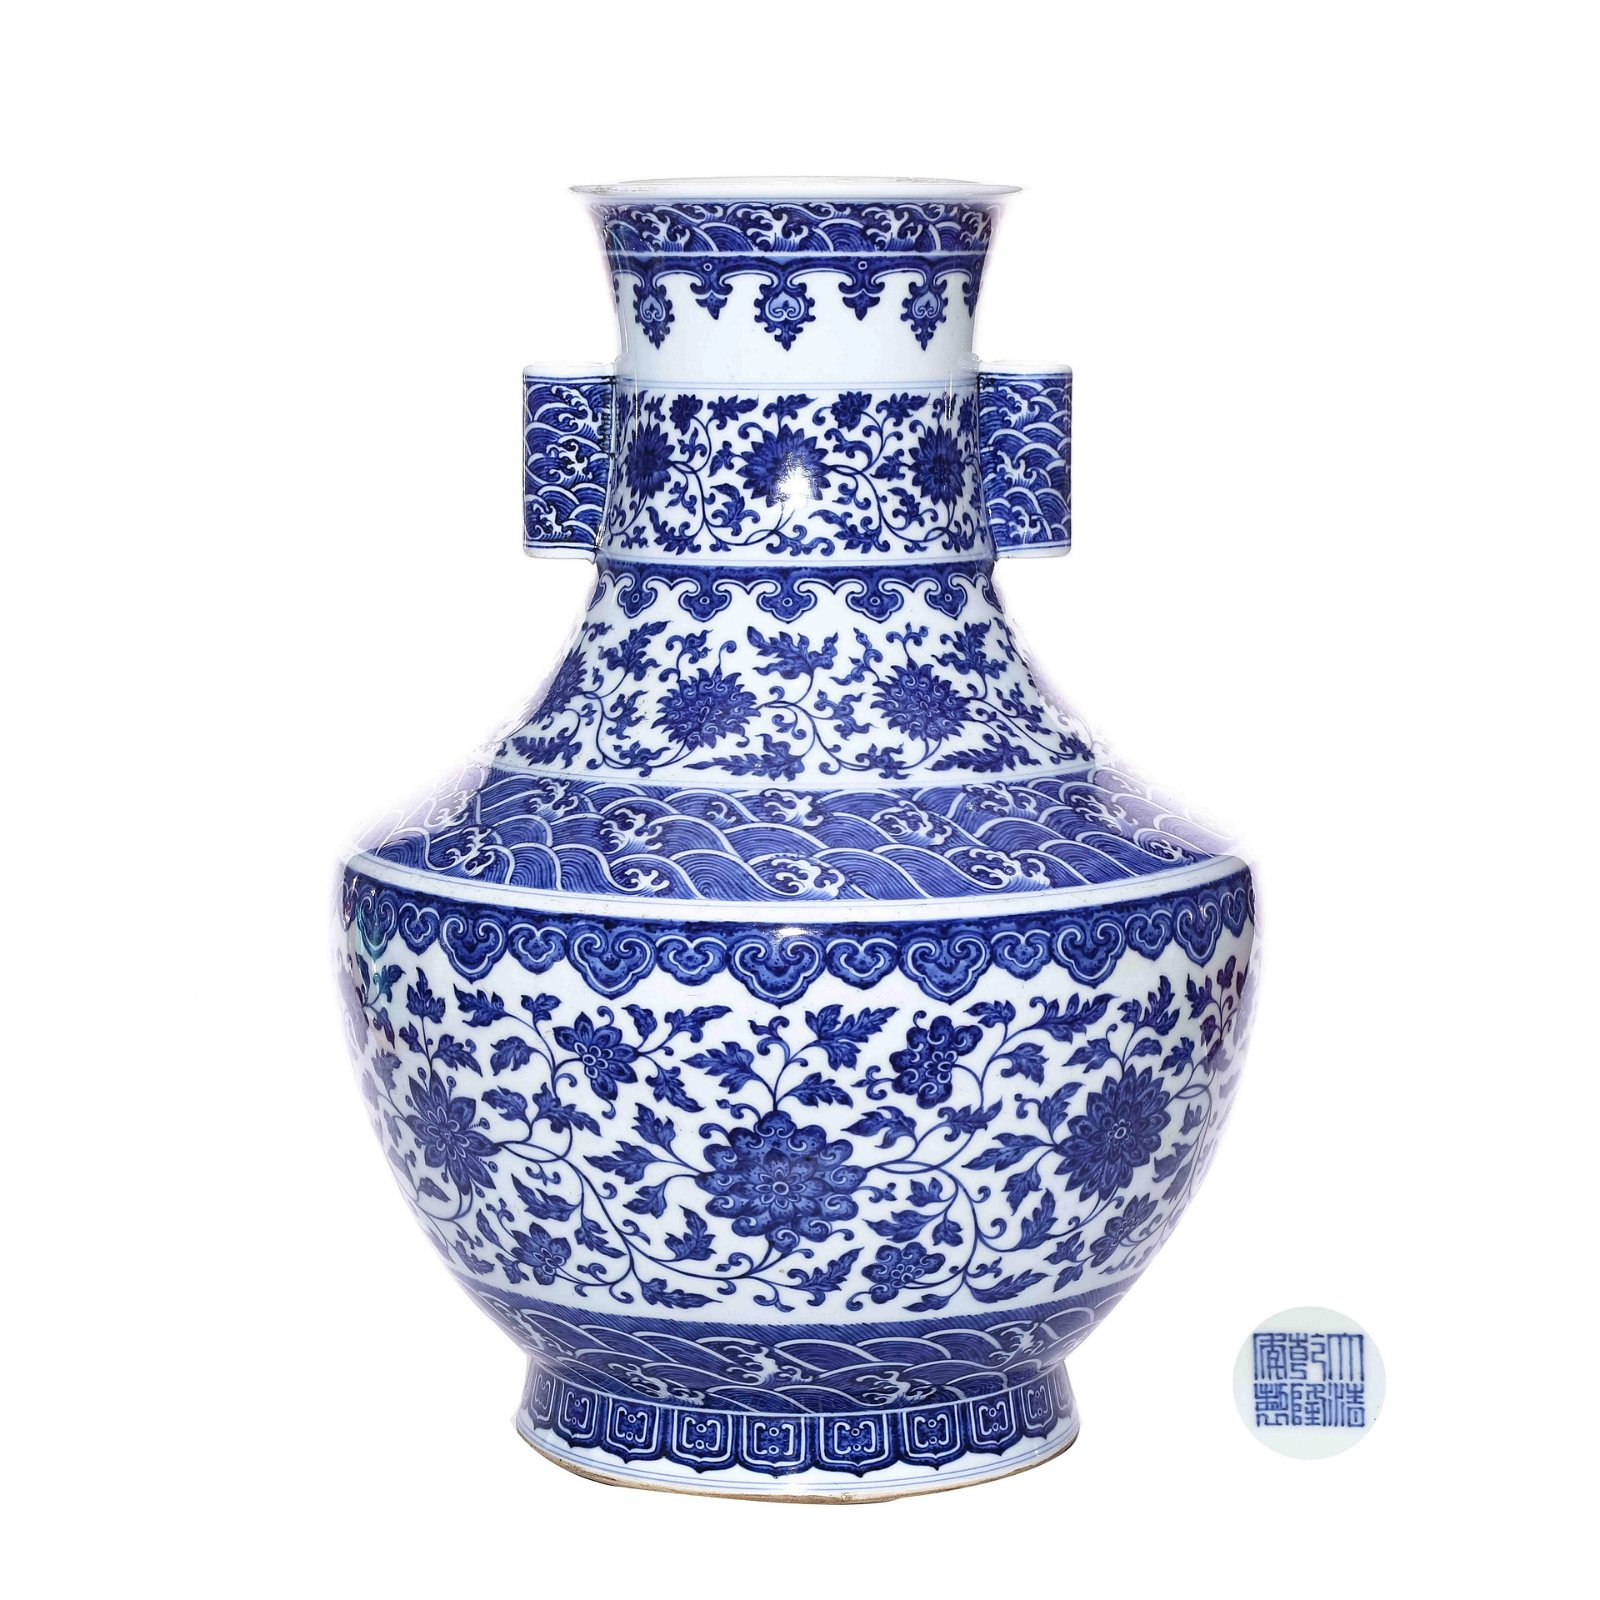 A CHINESE BLUE AND WHITE PORCELAIN WINE CONTAINER